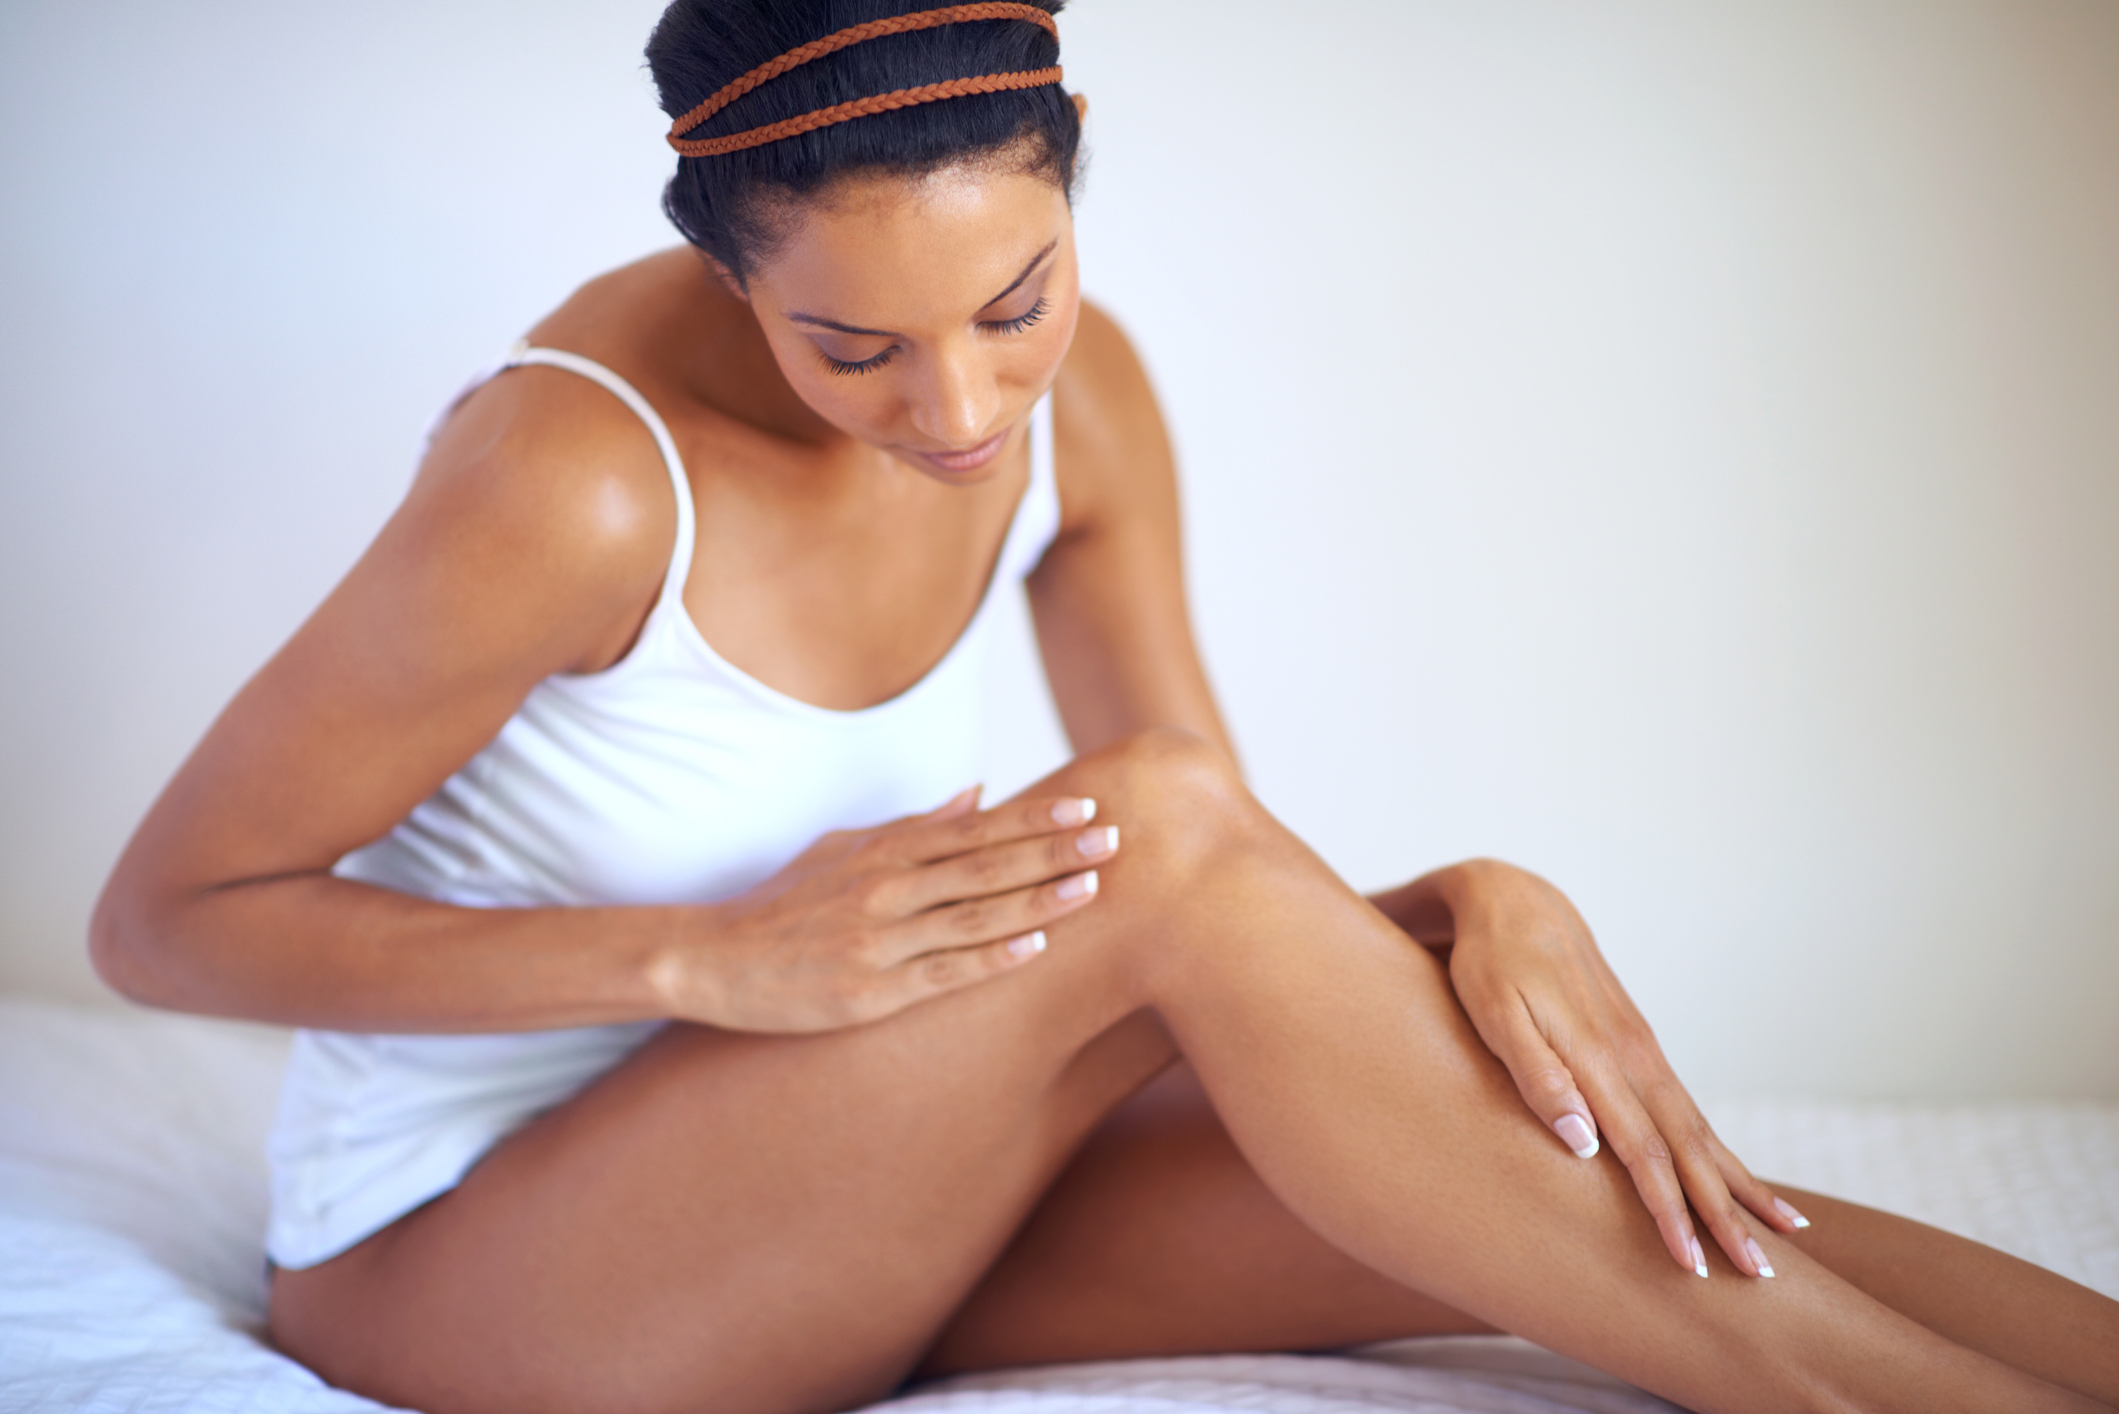 Cynthia M. Poulos MD Blog | 5 Common Misconceptions About Laser Hair Removal